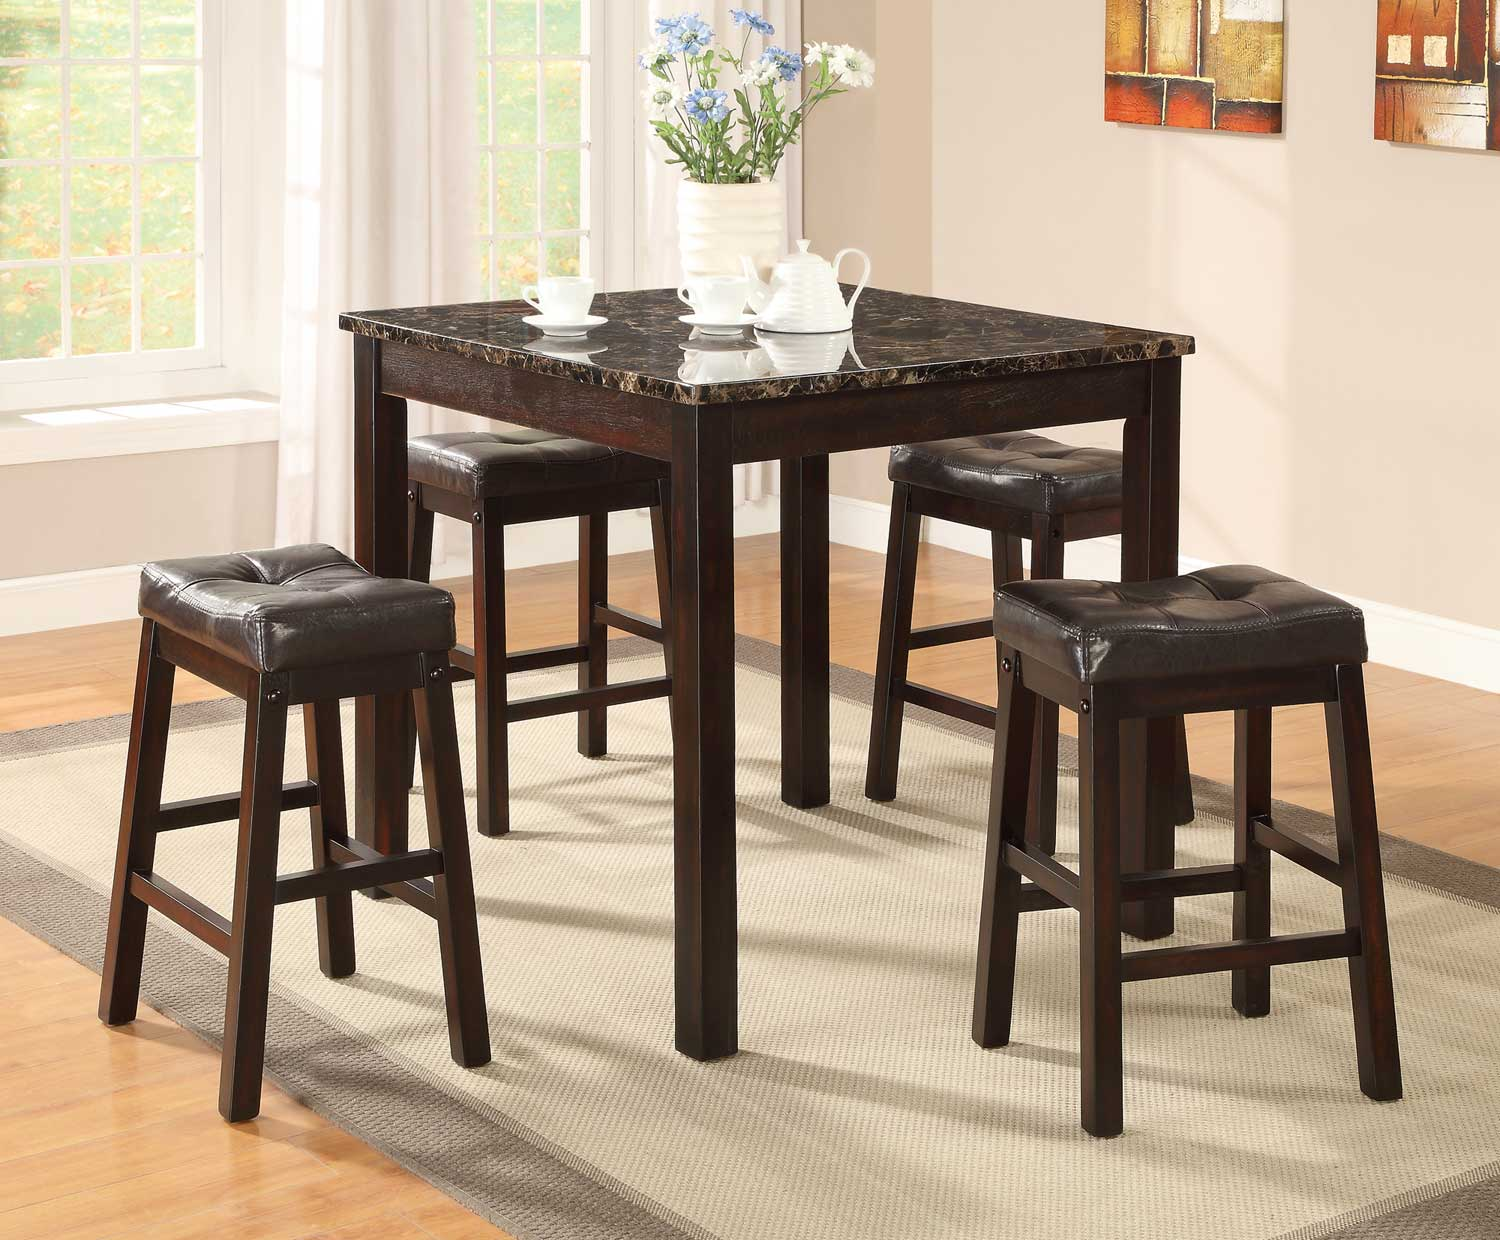 Coaster Sophia 5 Pack Counter Height Dinettes - Cappuccino